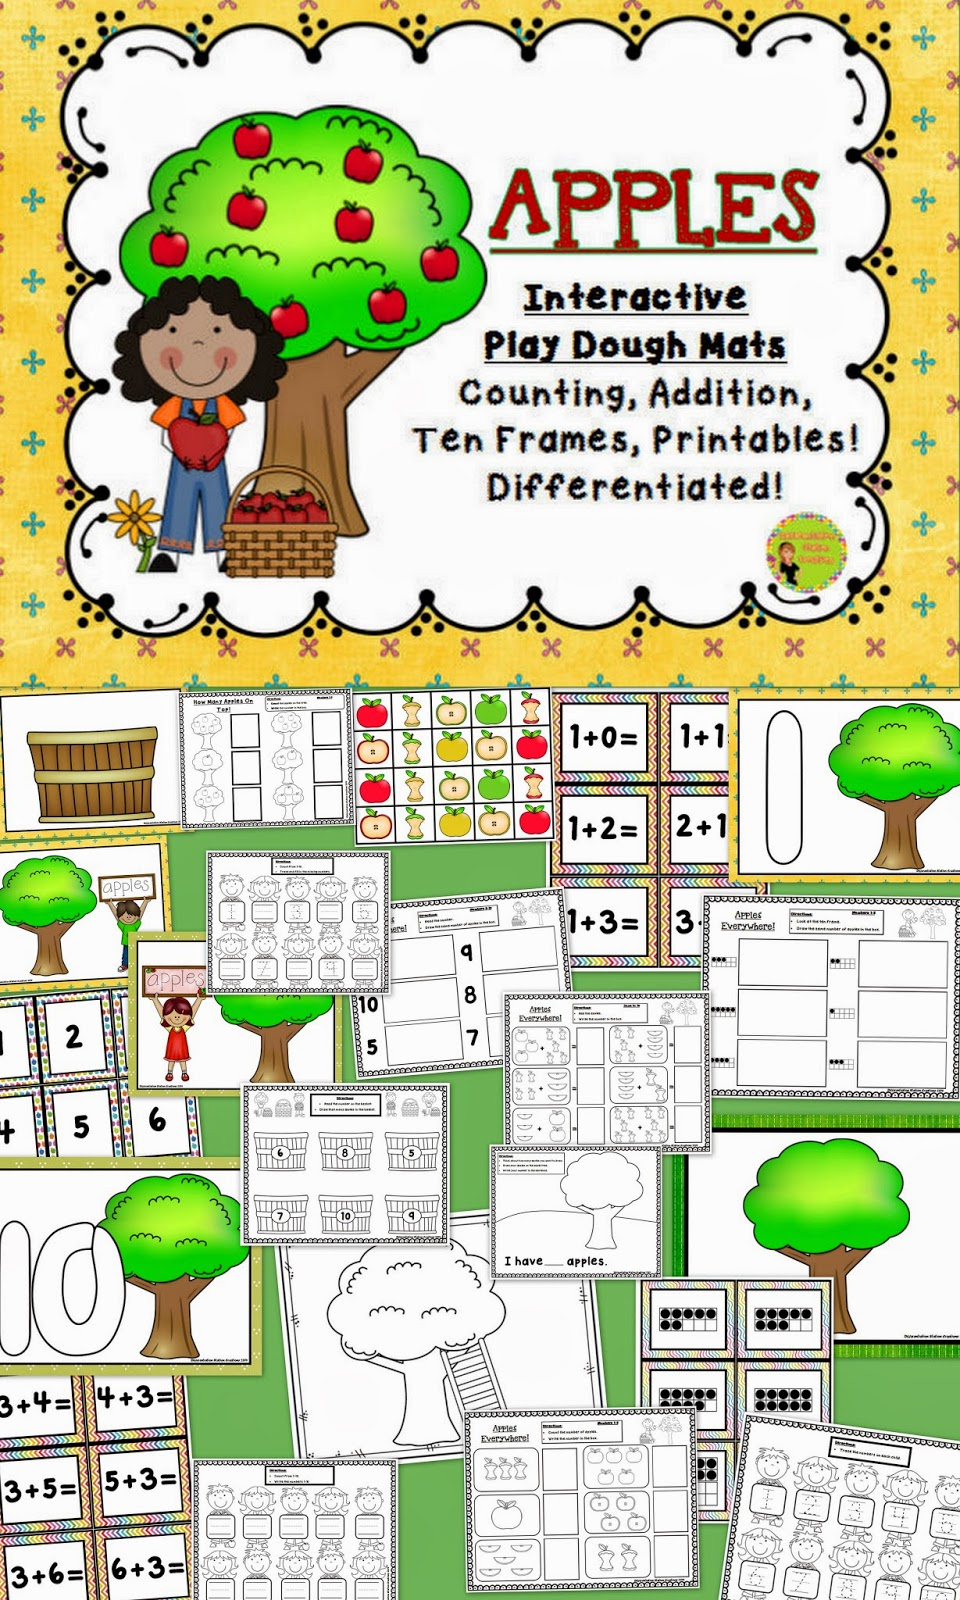 http://www.teacherspayteachers.com/Product/Apples-Interactive-Play-Dough-Mats-Counting-Centers-and-Games-Printables-1353686